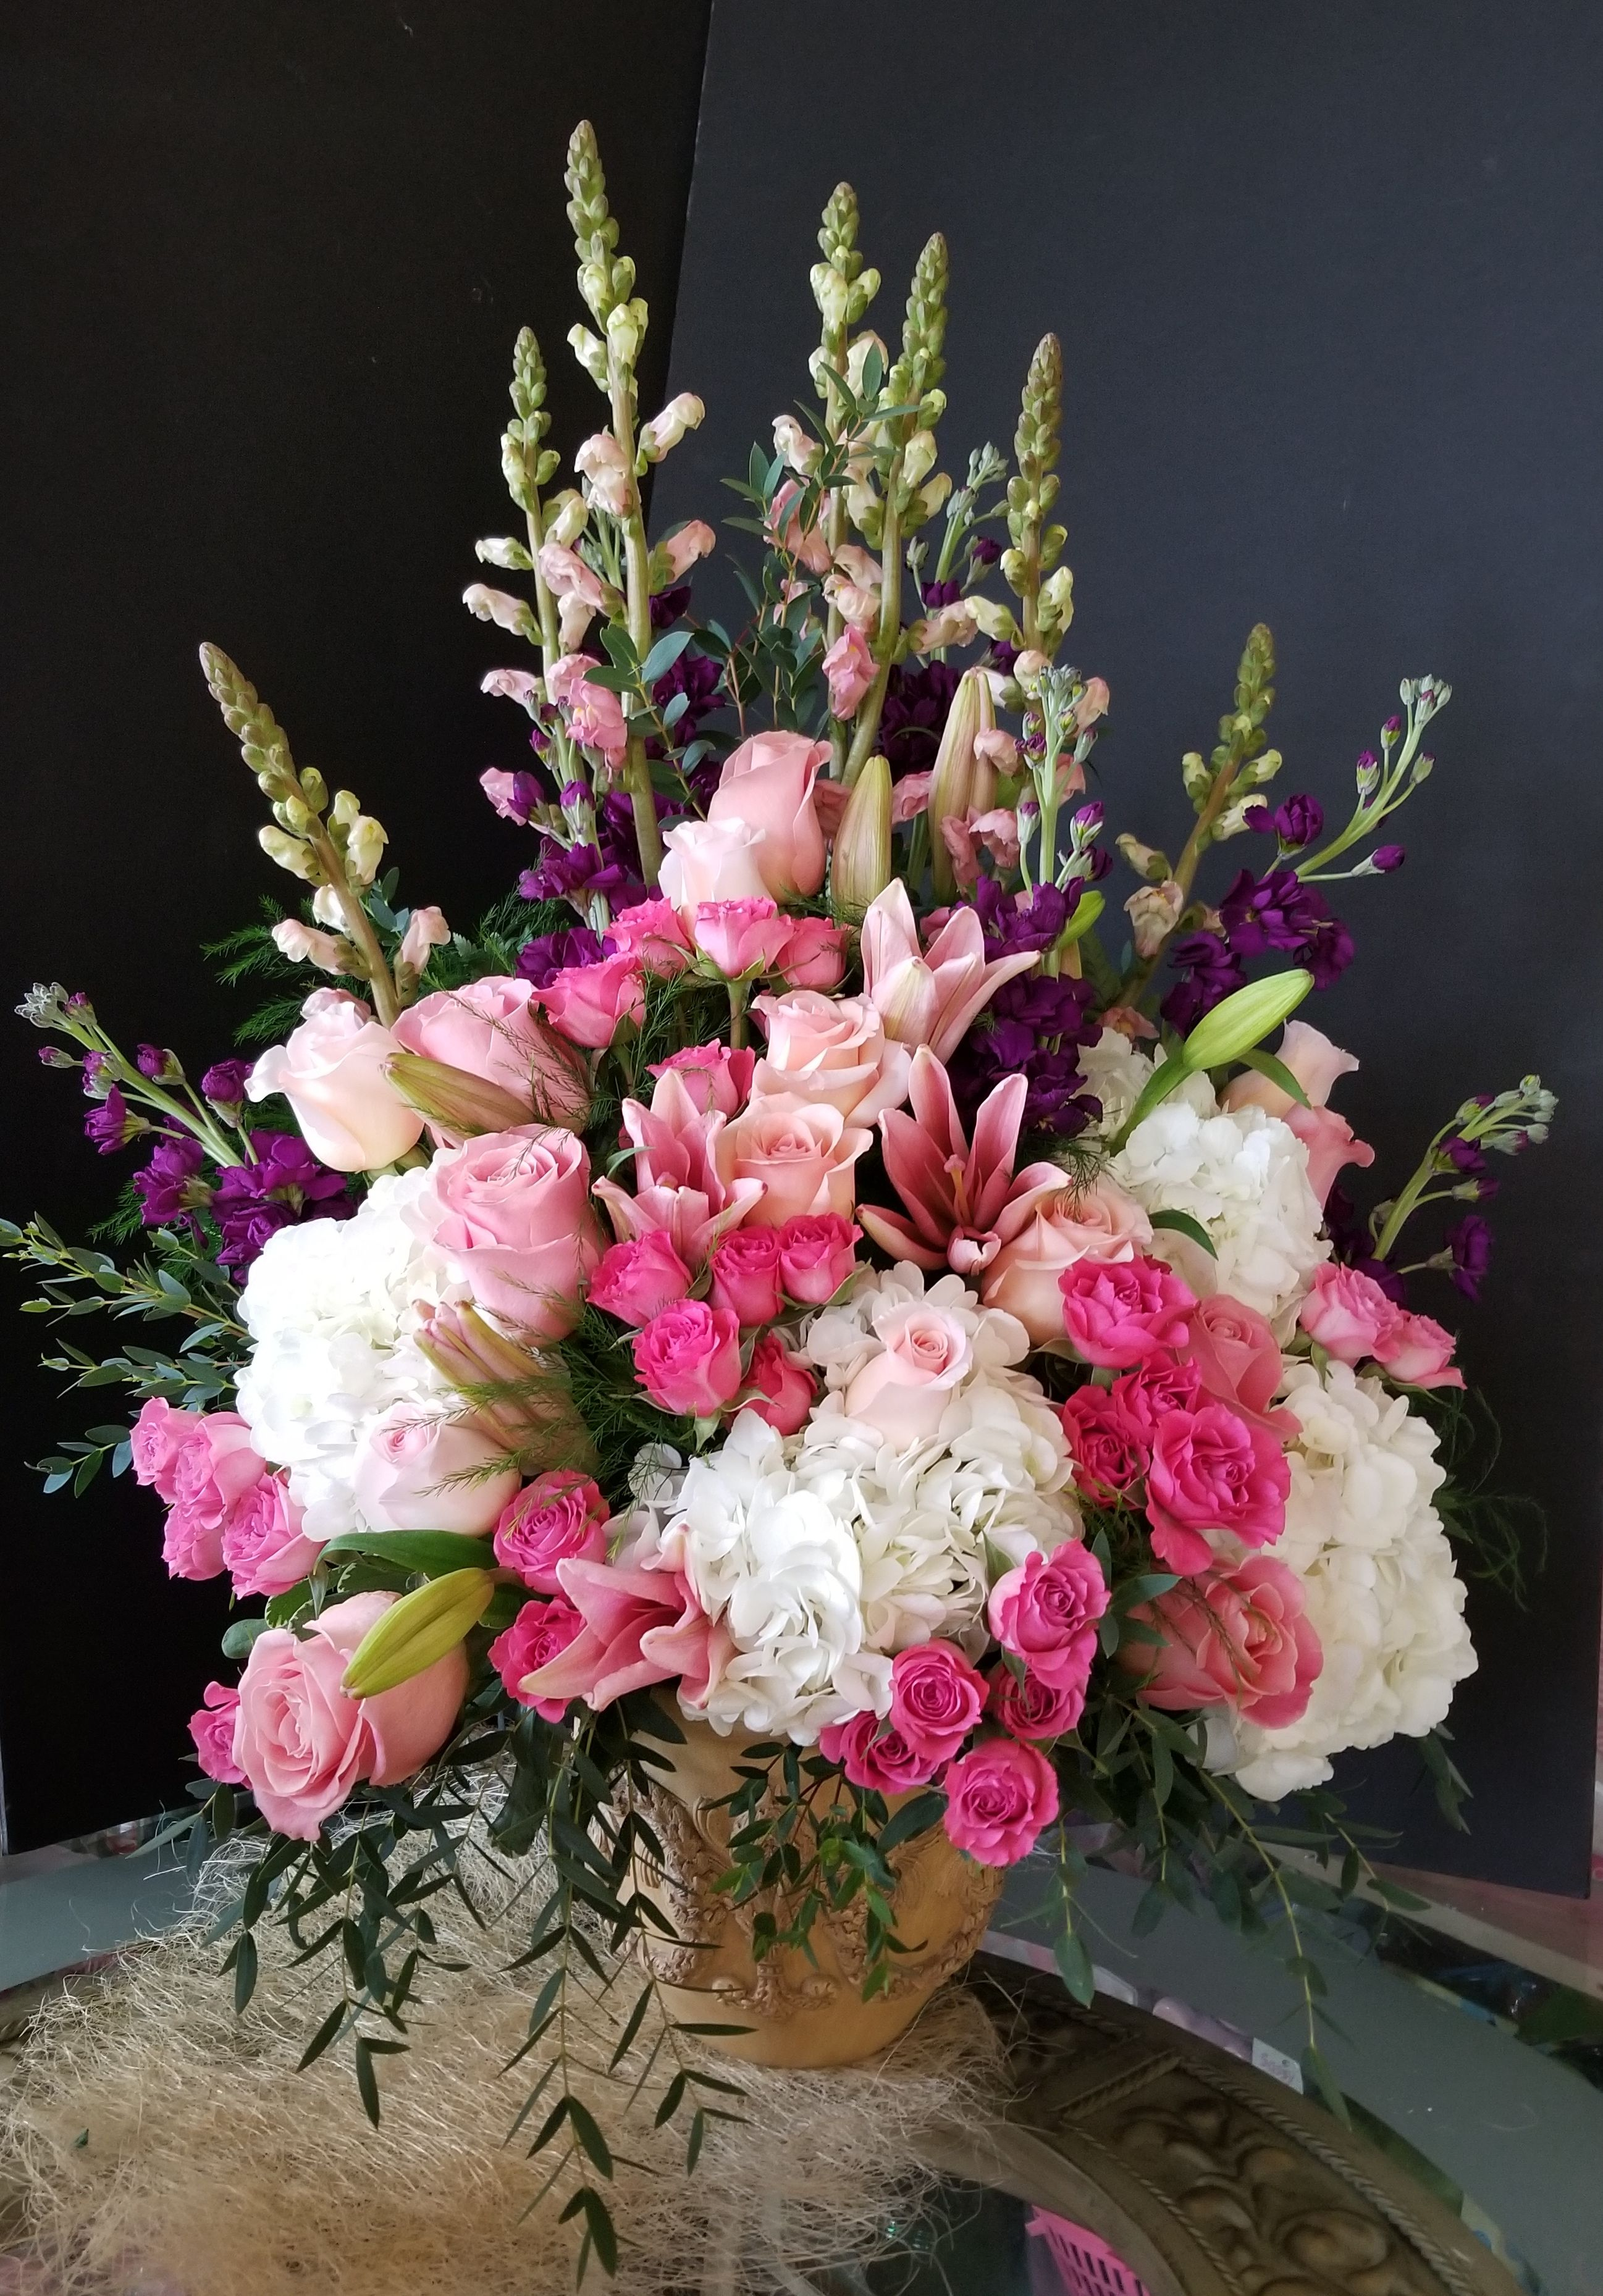 Order Flowers Online With Same Day Delivery From Brigitte S Flower Fresh And Hand Delivered Right To Your Door In Fort Lauderdale